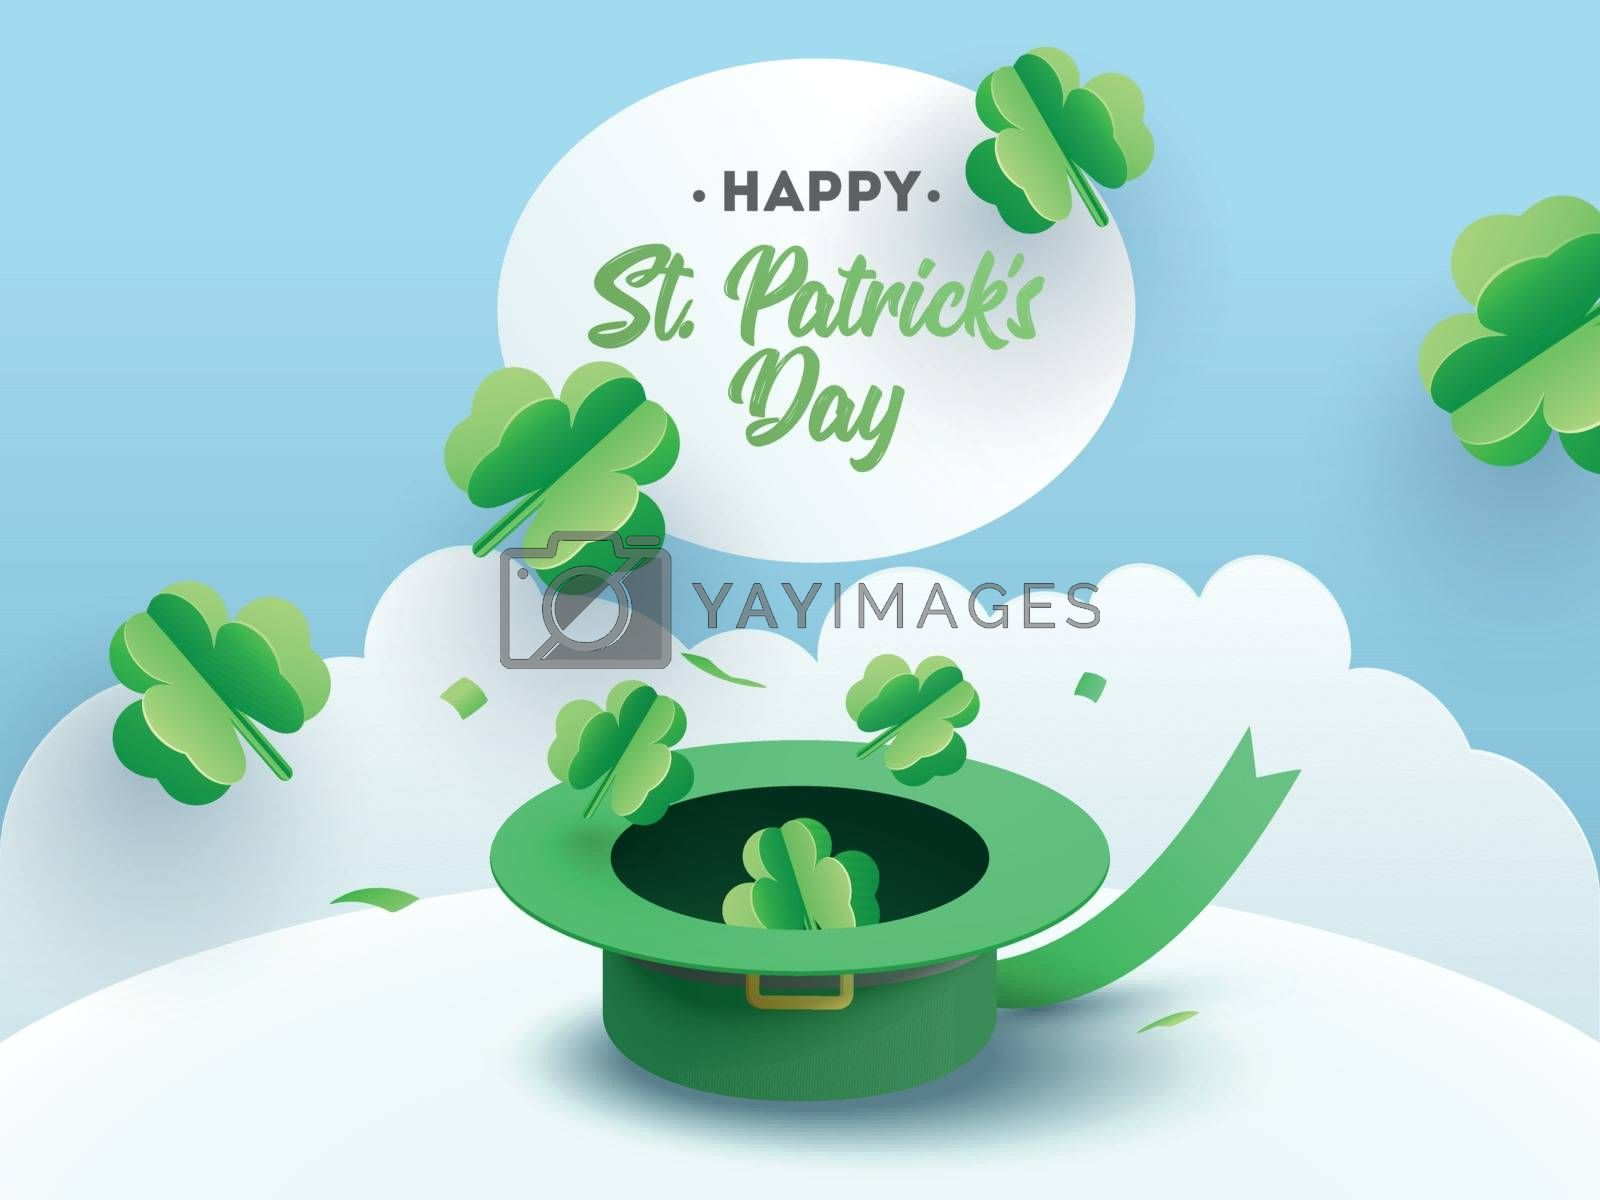 Royalty free image of Paper cut style clover leaves illustration with leprechaun hat f by aispl